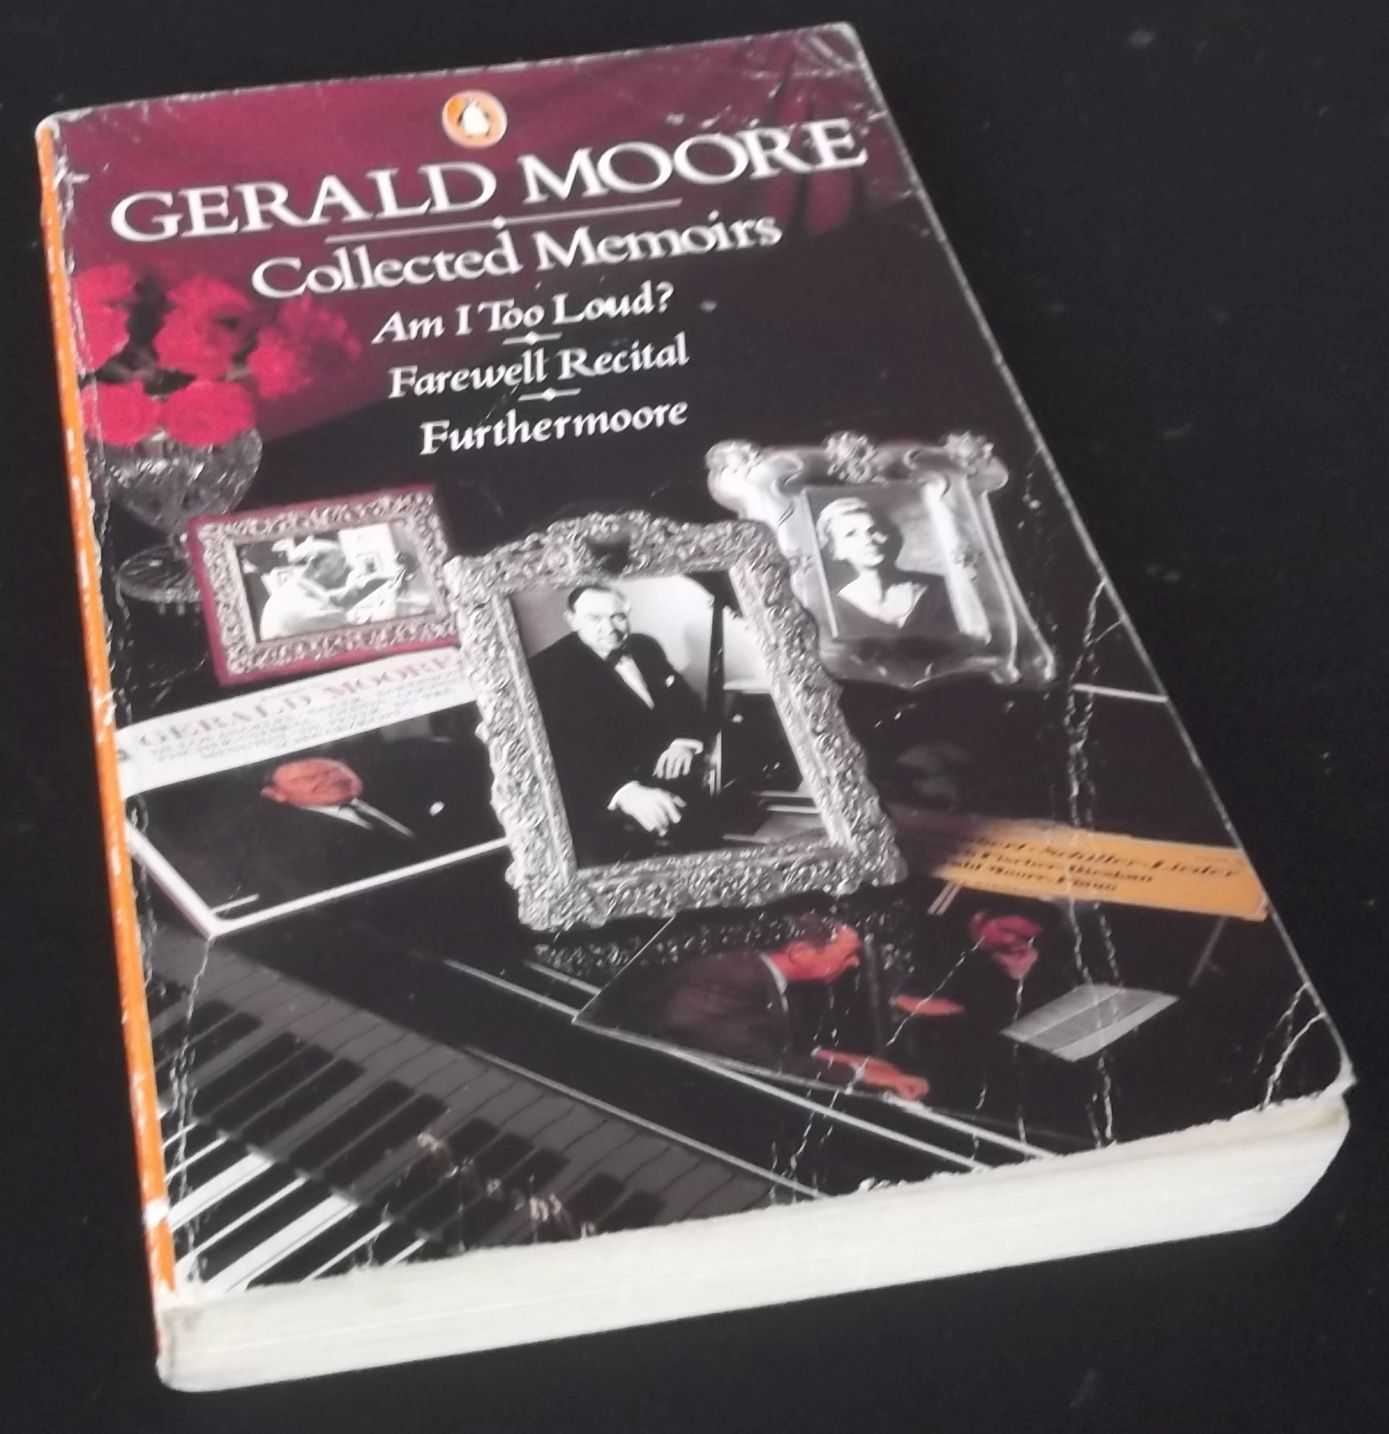 GERALD MOORE - Collected Memoirs: